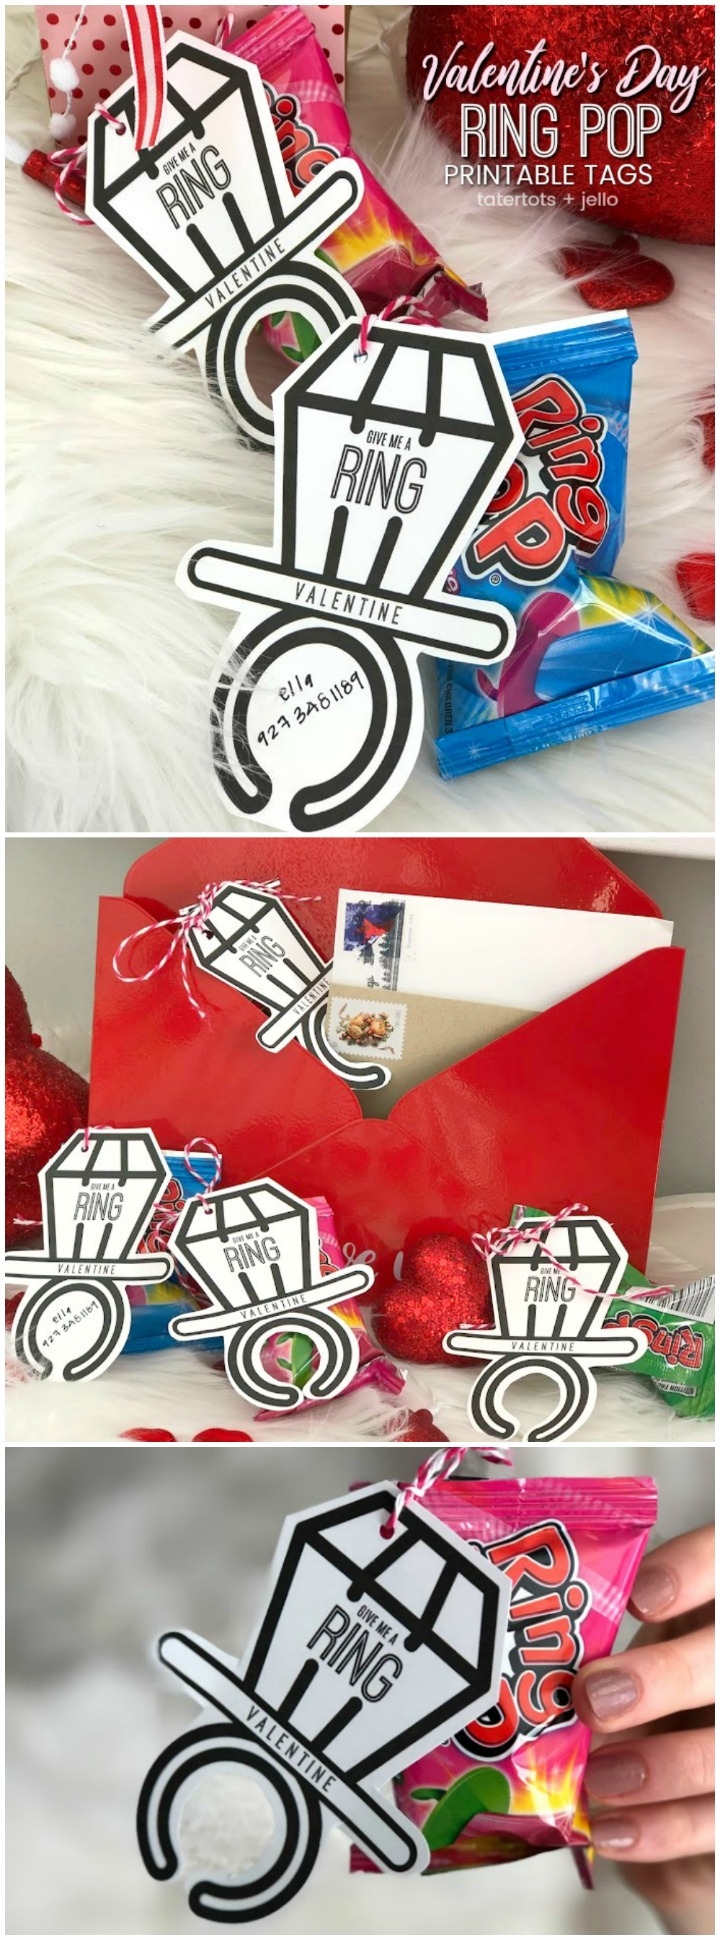 Ring Pop Valentine's Day Tween + Teen Printables. Print these modern and quirky Ring Pop printables and give them out this Valentine's Day.